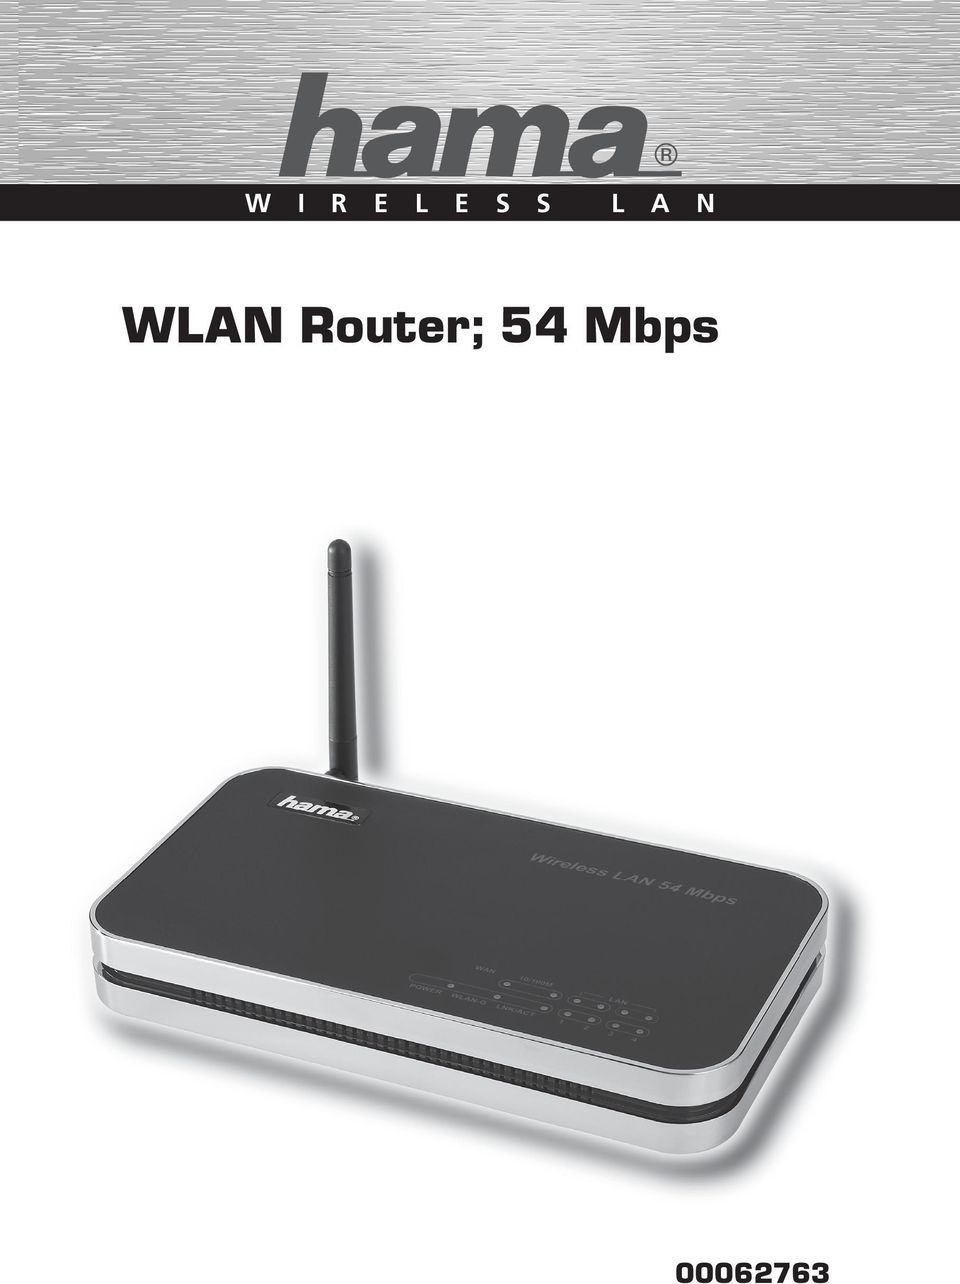 WLAN Router;